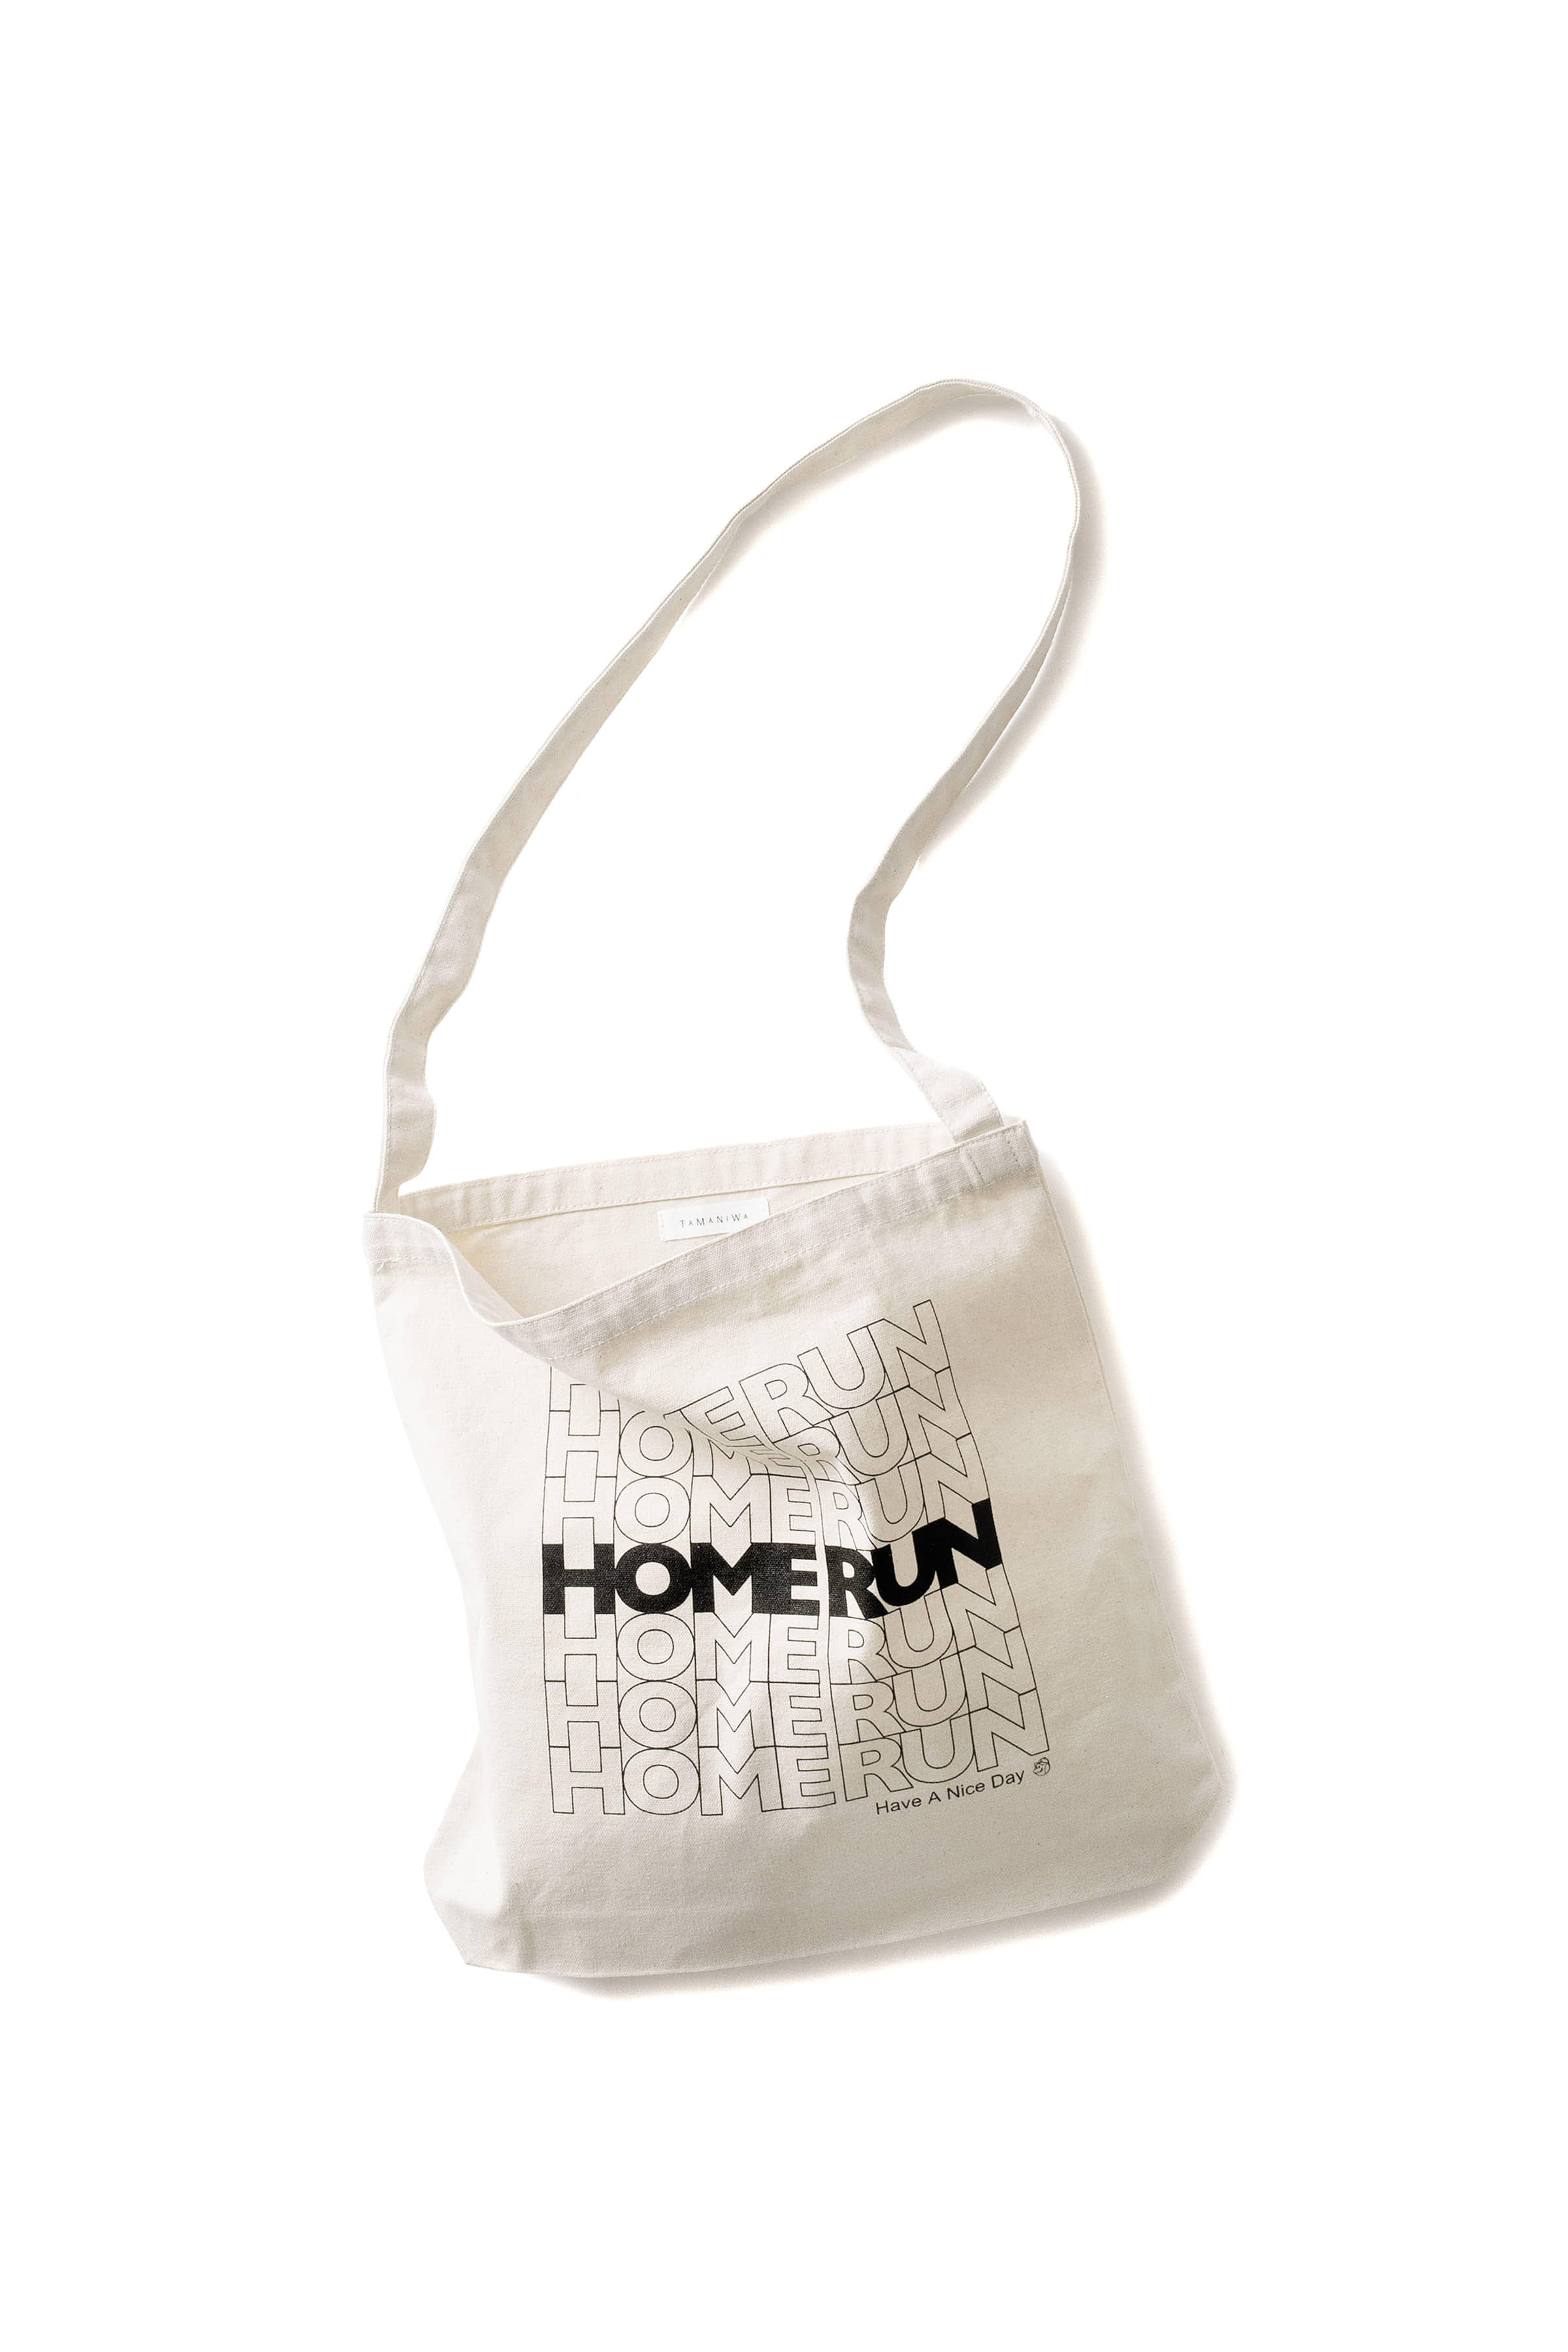 TAMANIWA : Homerun Bag (Black)